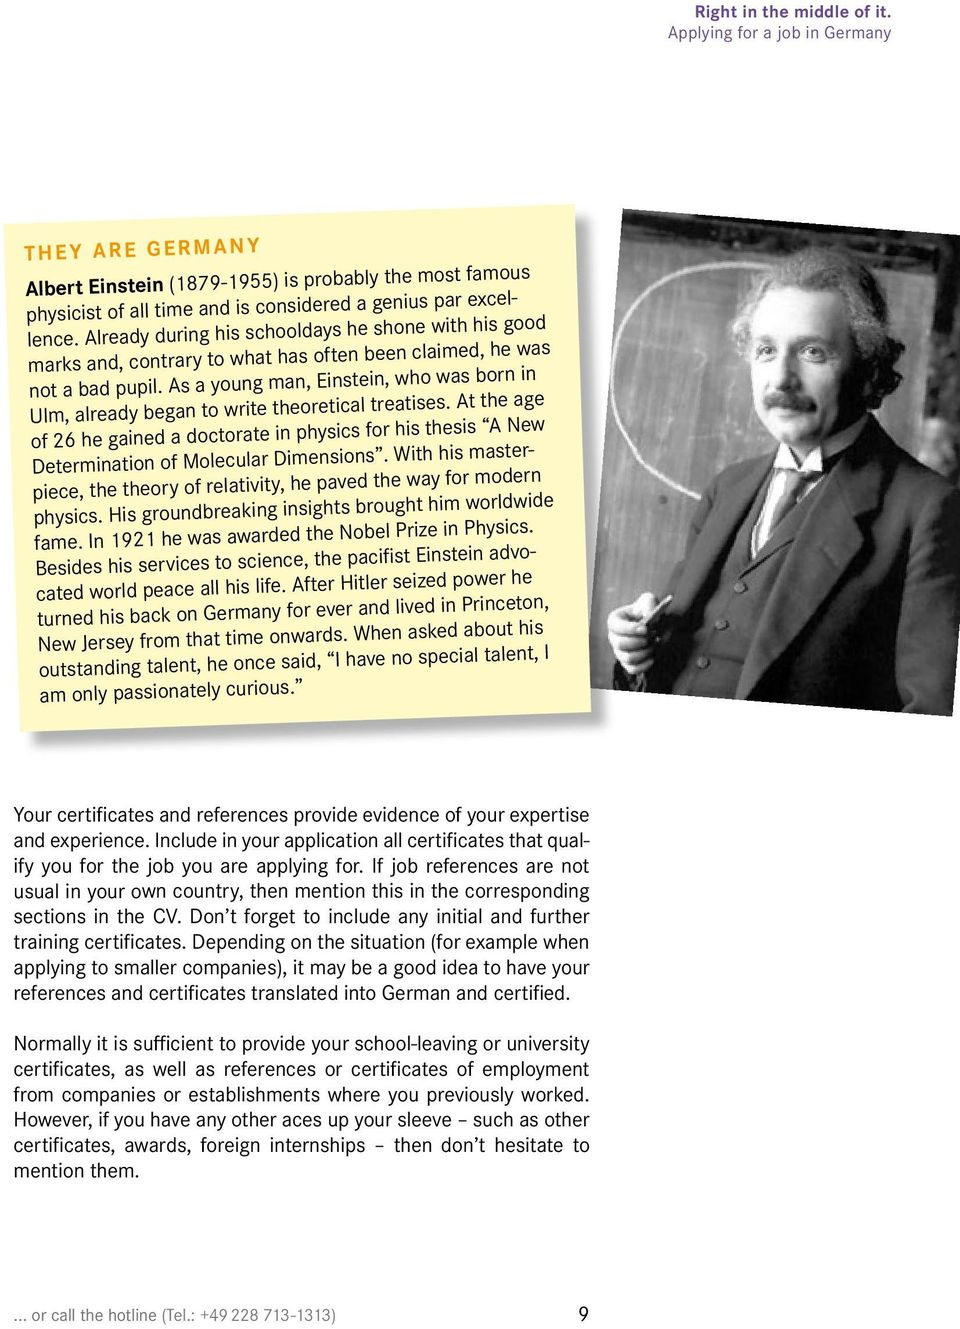 As a young man, Einstein, who was born in Ulm, already began to write theoretical treatises.